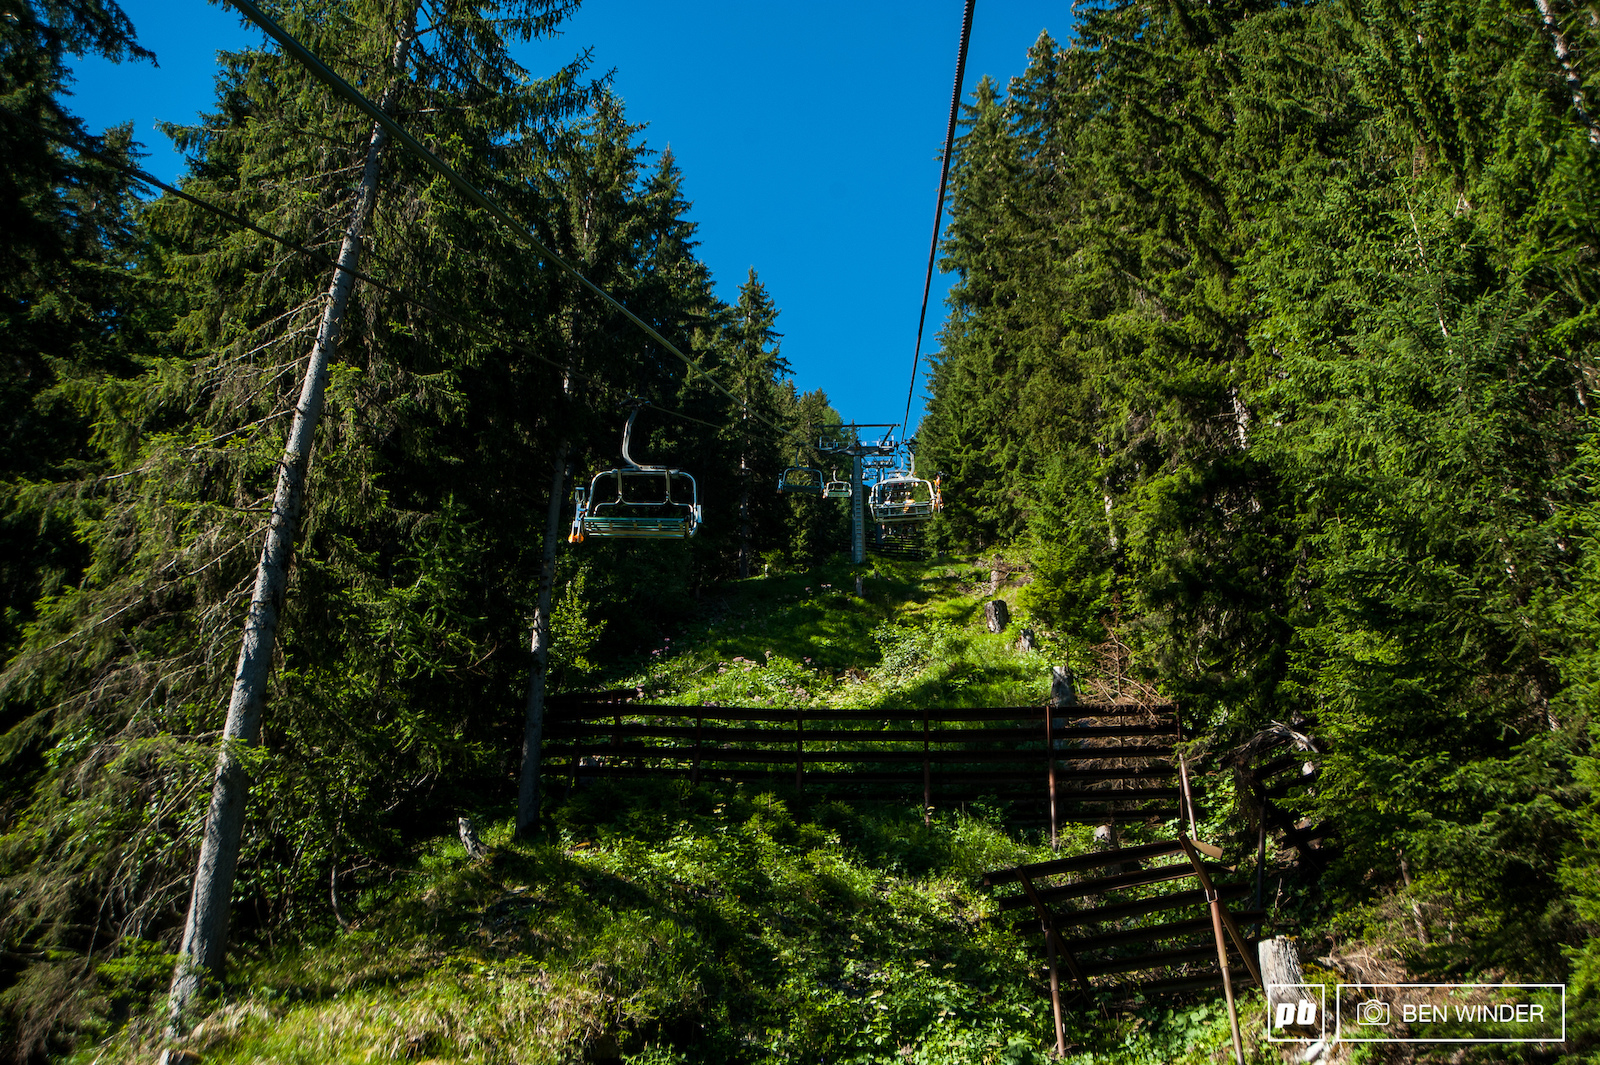 Riders use the chair lift to access three of the stages and pedal to the top of one stage.